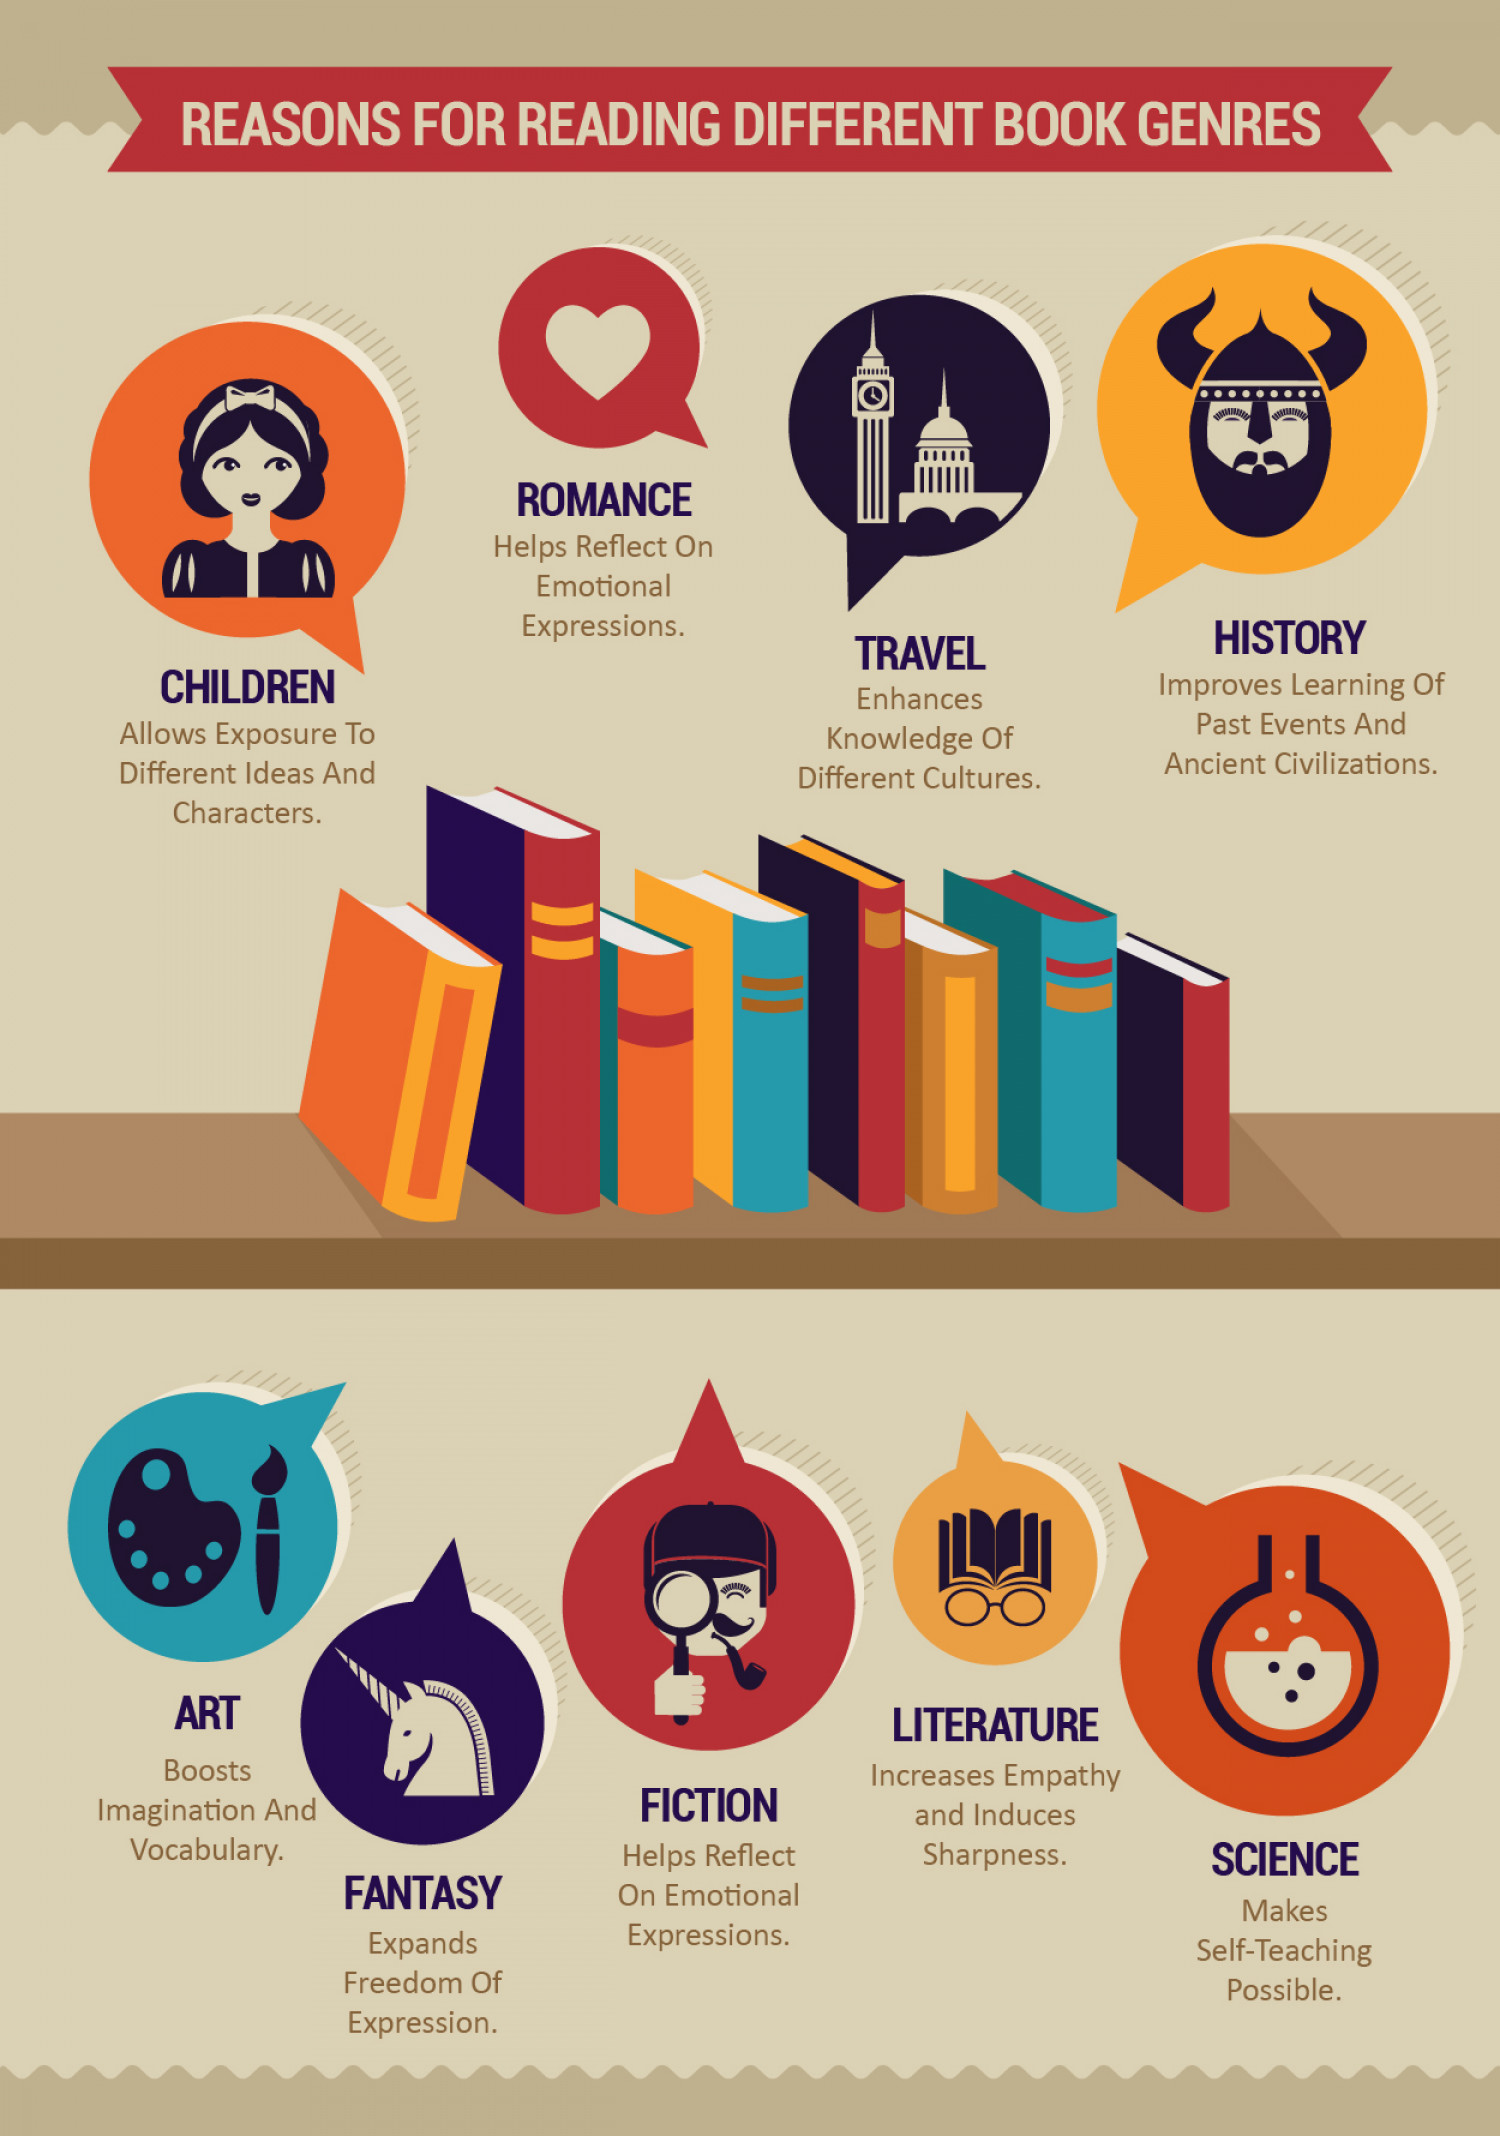 Why Is It Important For Children To Read Different Genres? Infographic